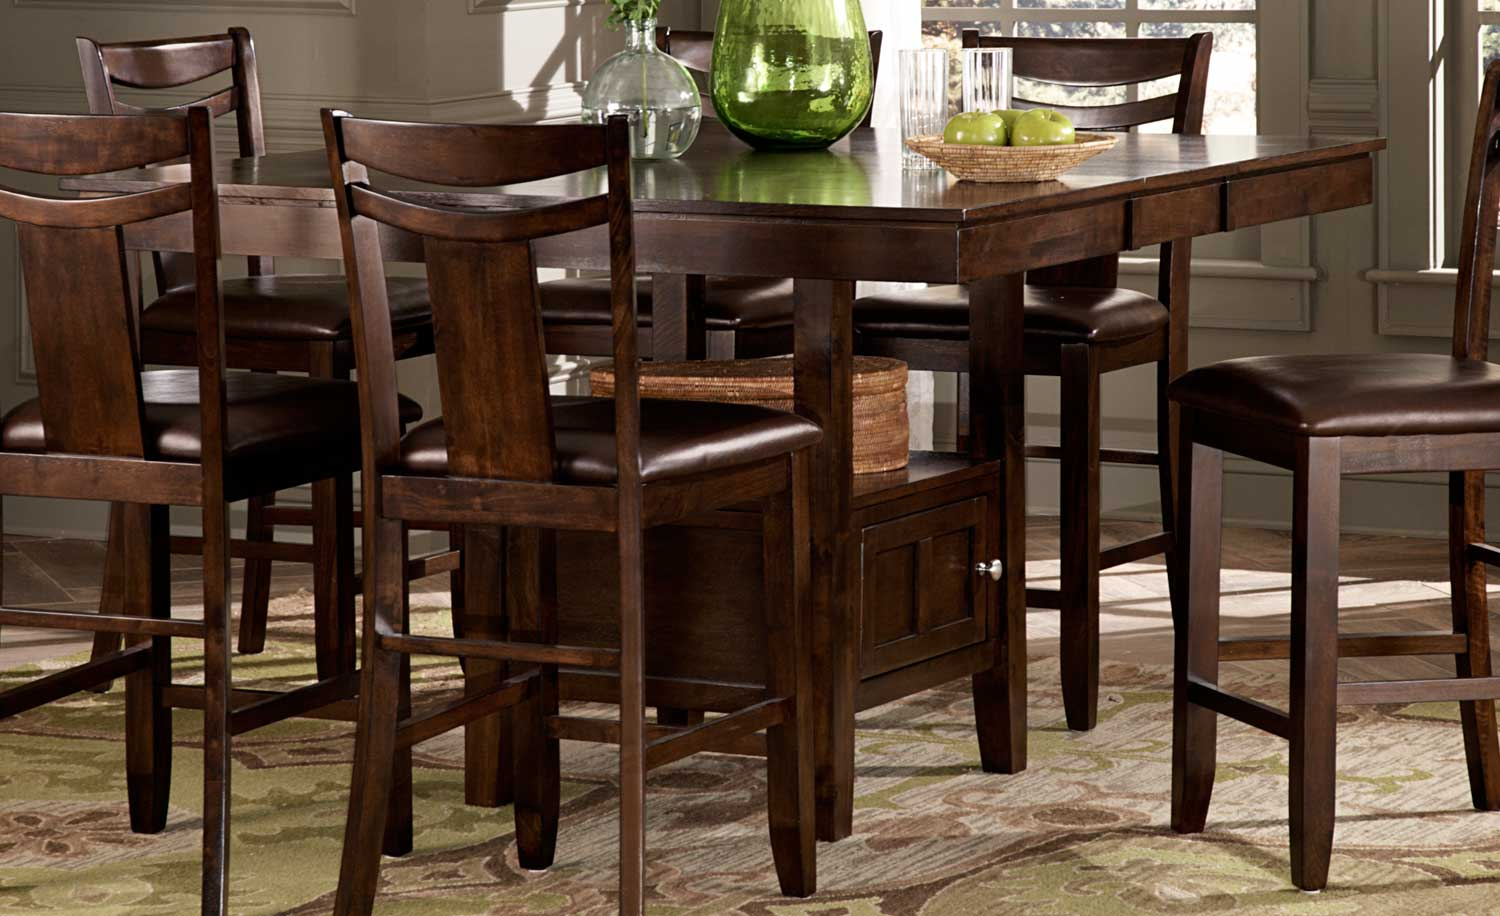 Homelegance Broome Counter Height Table - Dark Brown